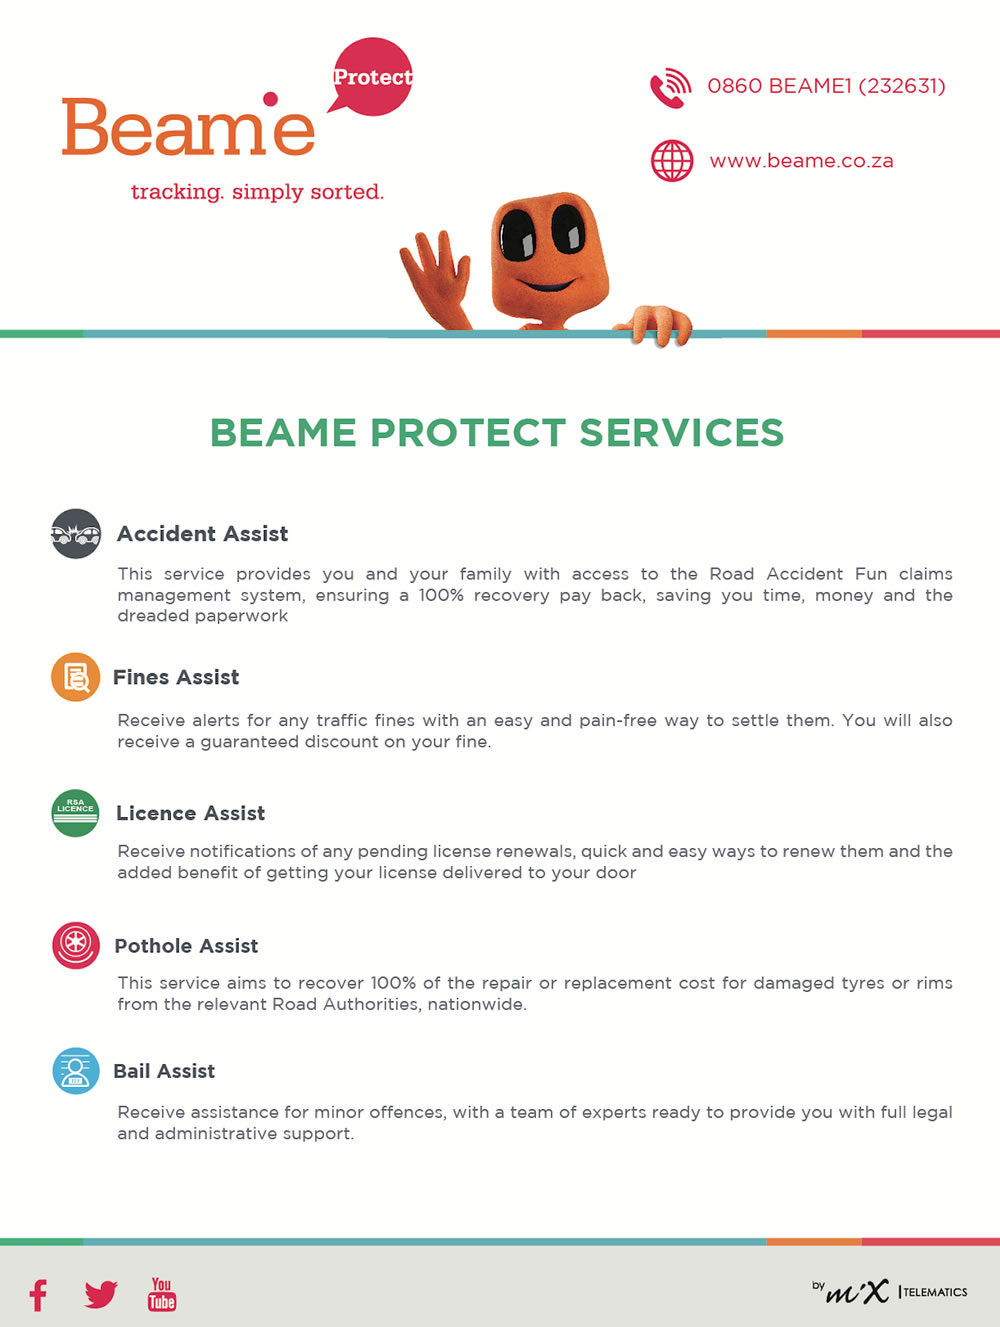 Beame Protect Infographic